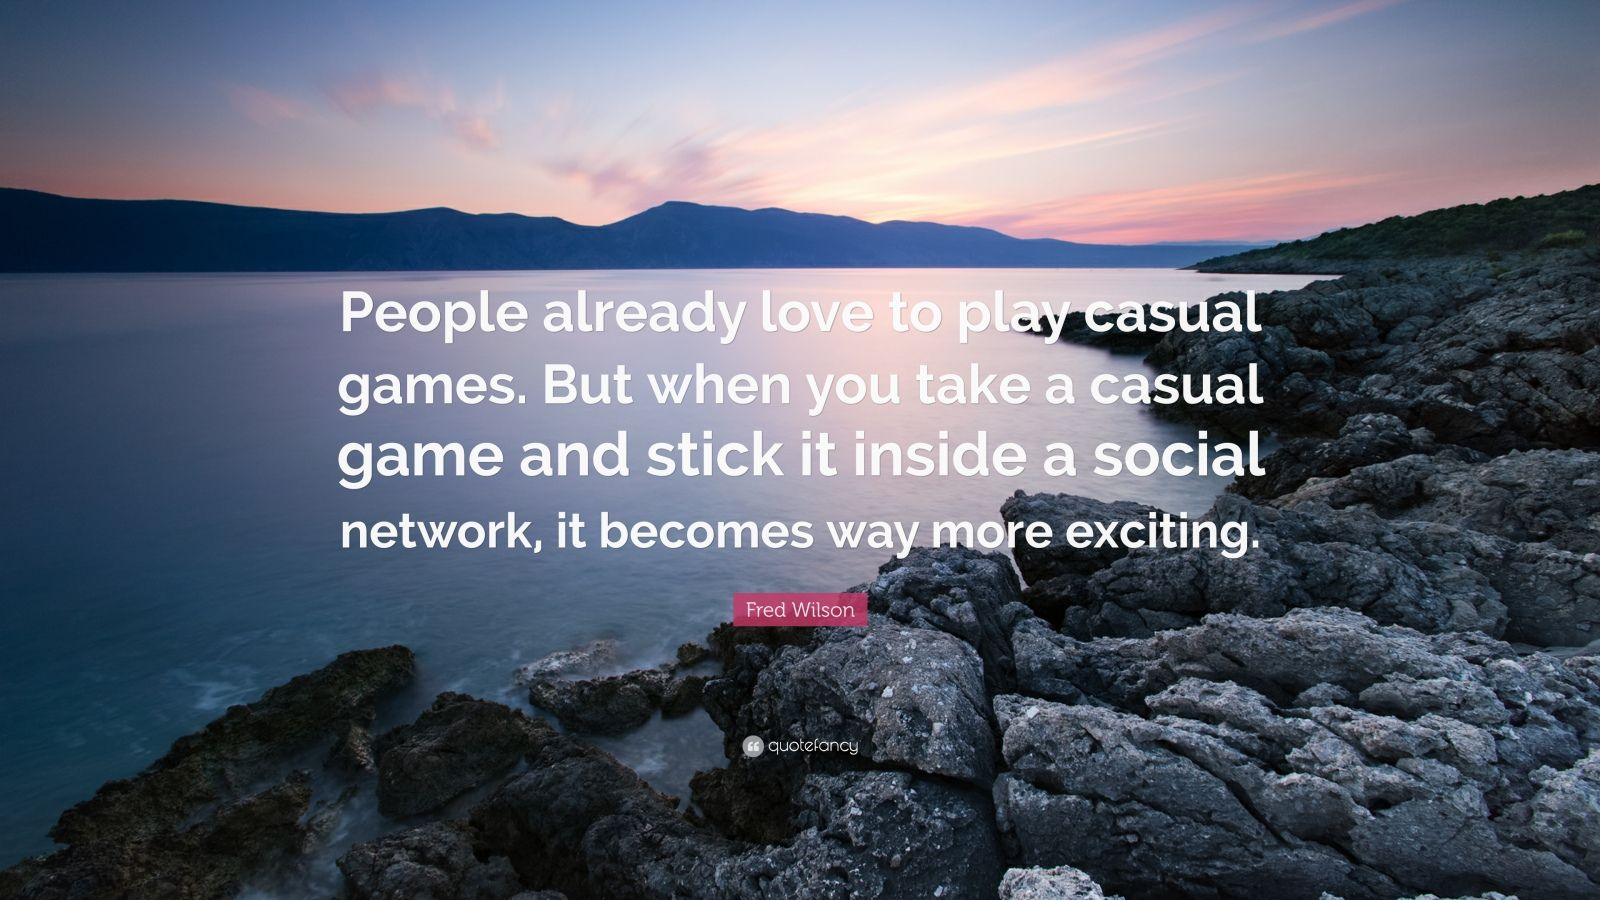 """Fred Wilson Quote: """"People already love to play casual games. But when you take a casual game and stick it inside a social network, it becomes way more exciting."""""""